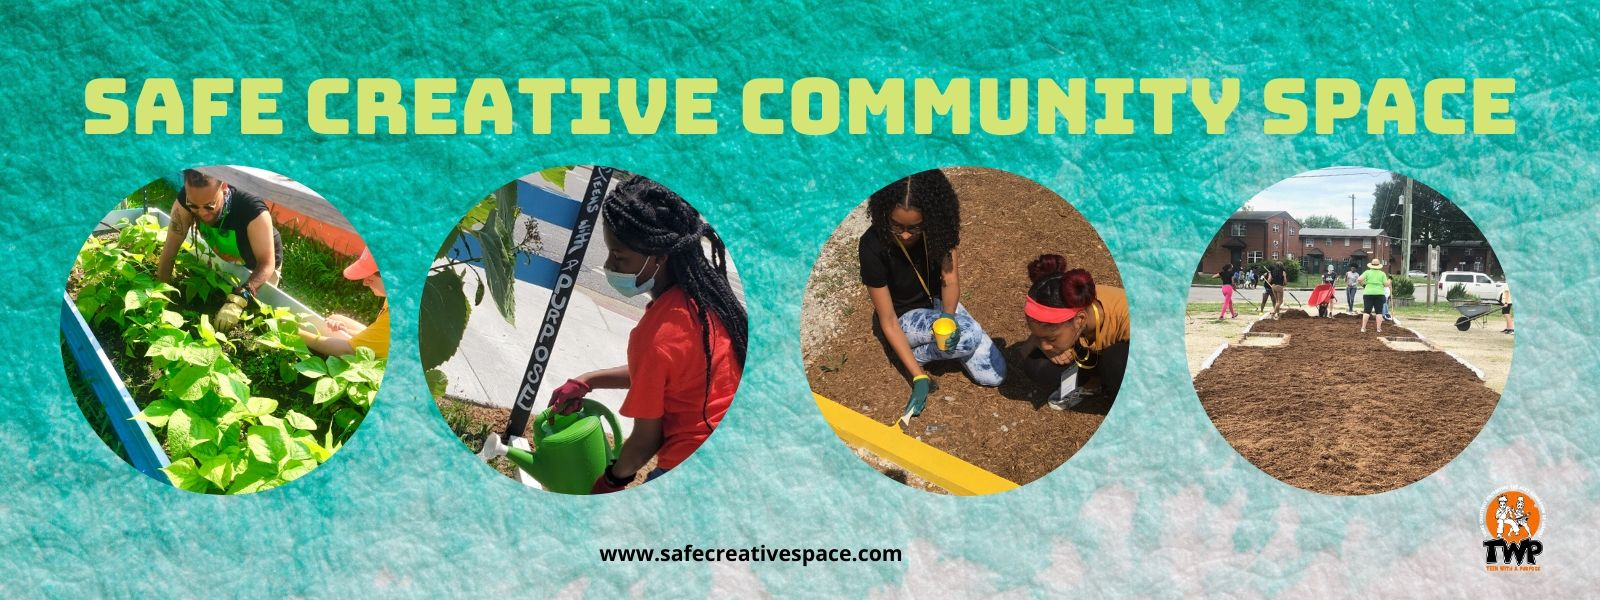 Safe Creative Community Space